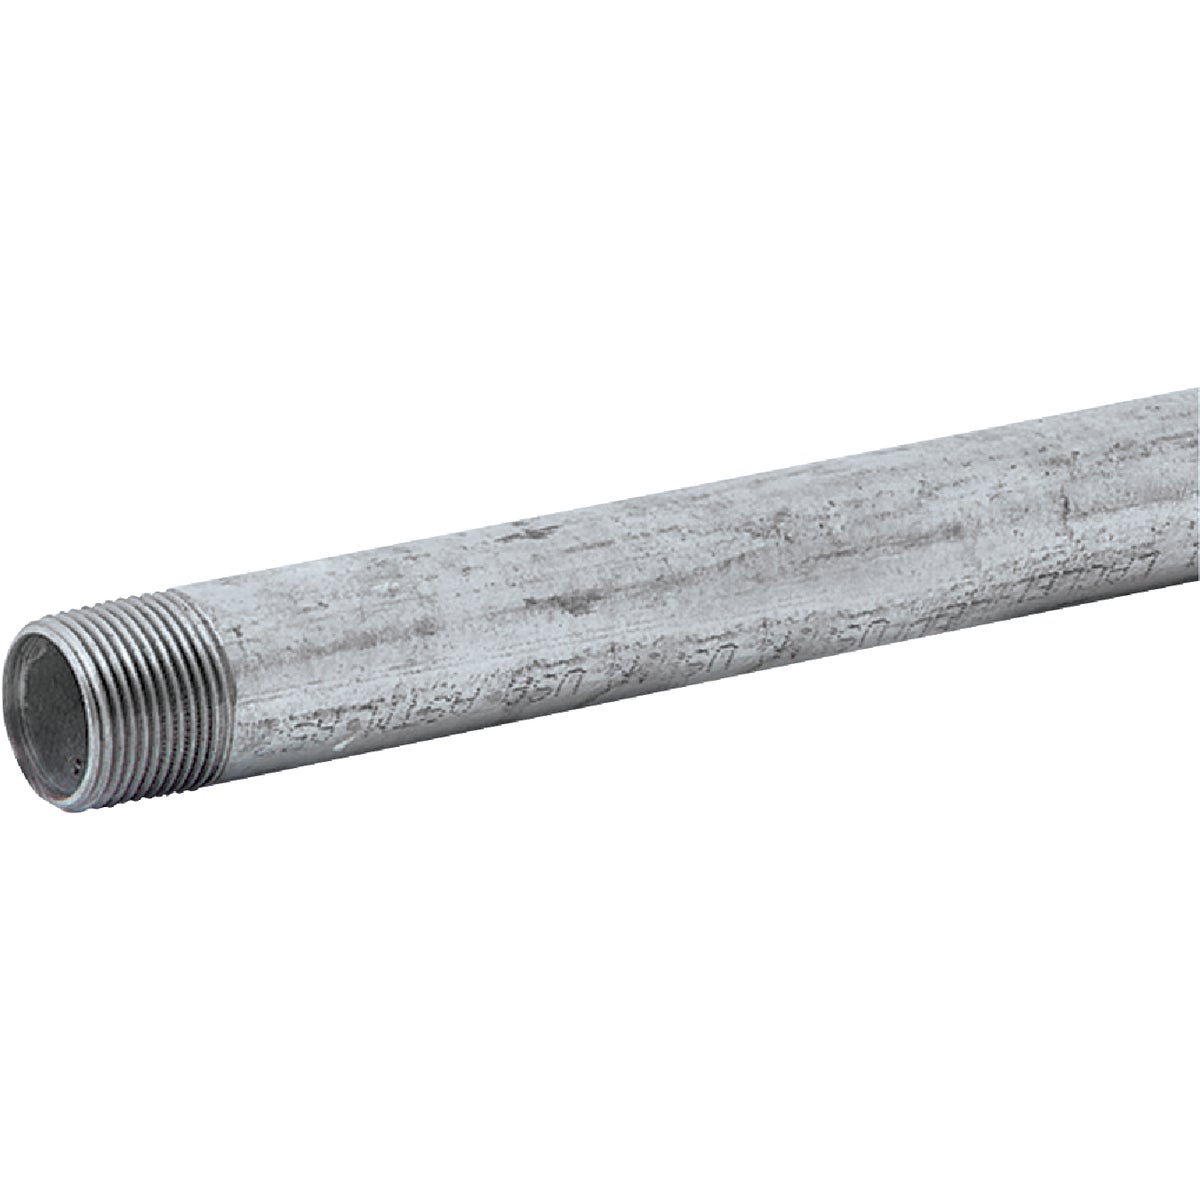 "3/4""X10' GALV PIPE - 10524 by Southland Pipe"